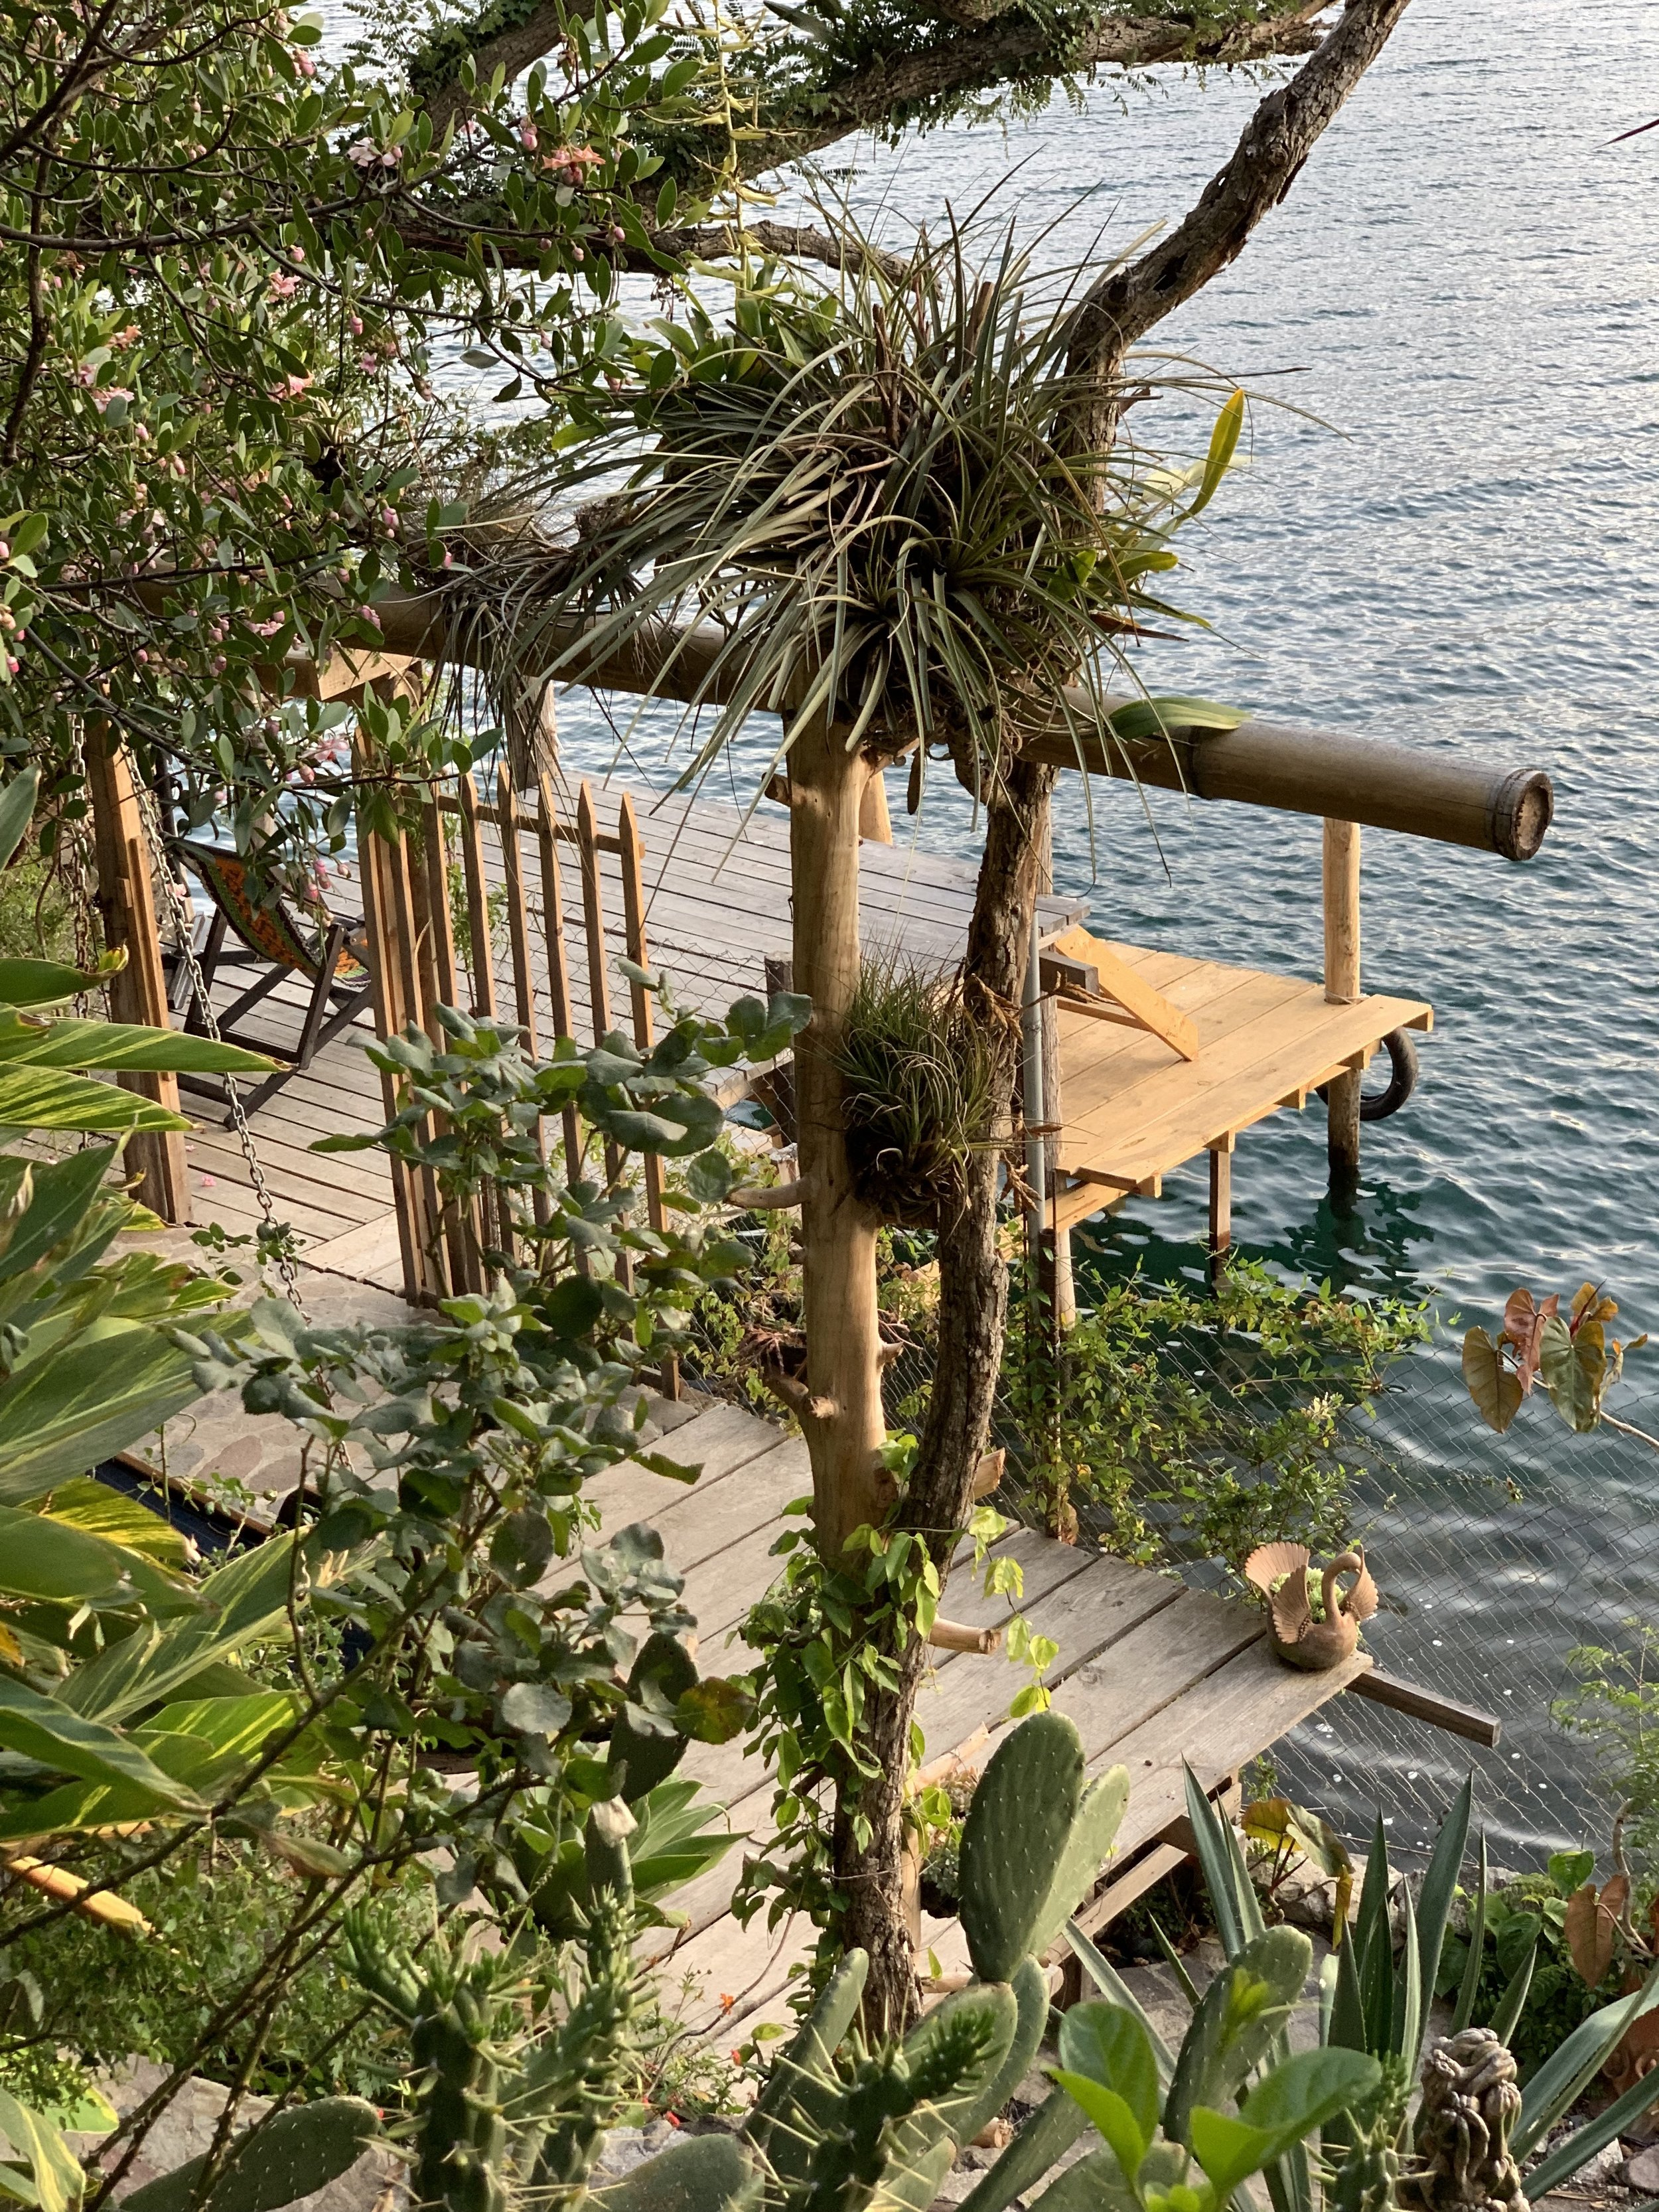 In Guatemala, Bliss by a Blue Lake - New York Times, December 26, 2004